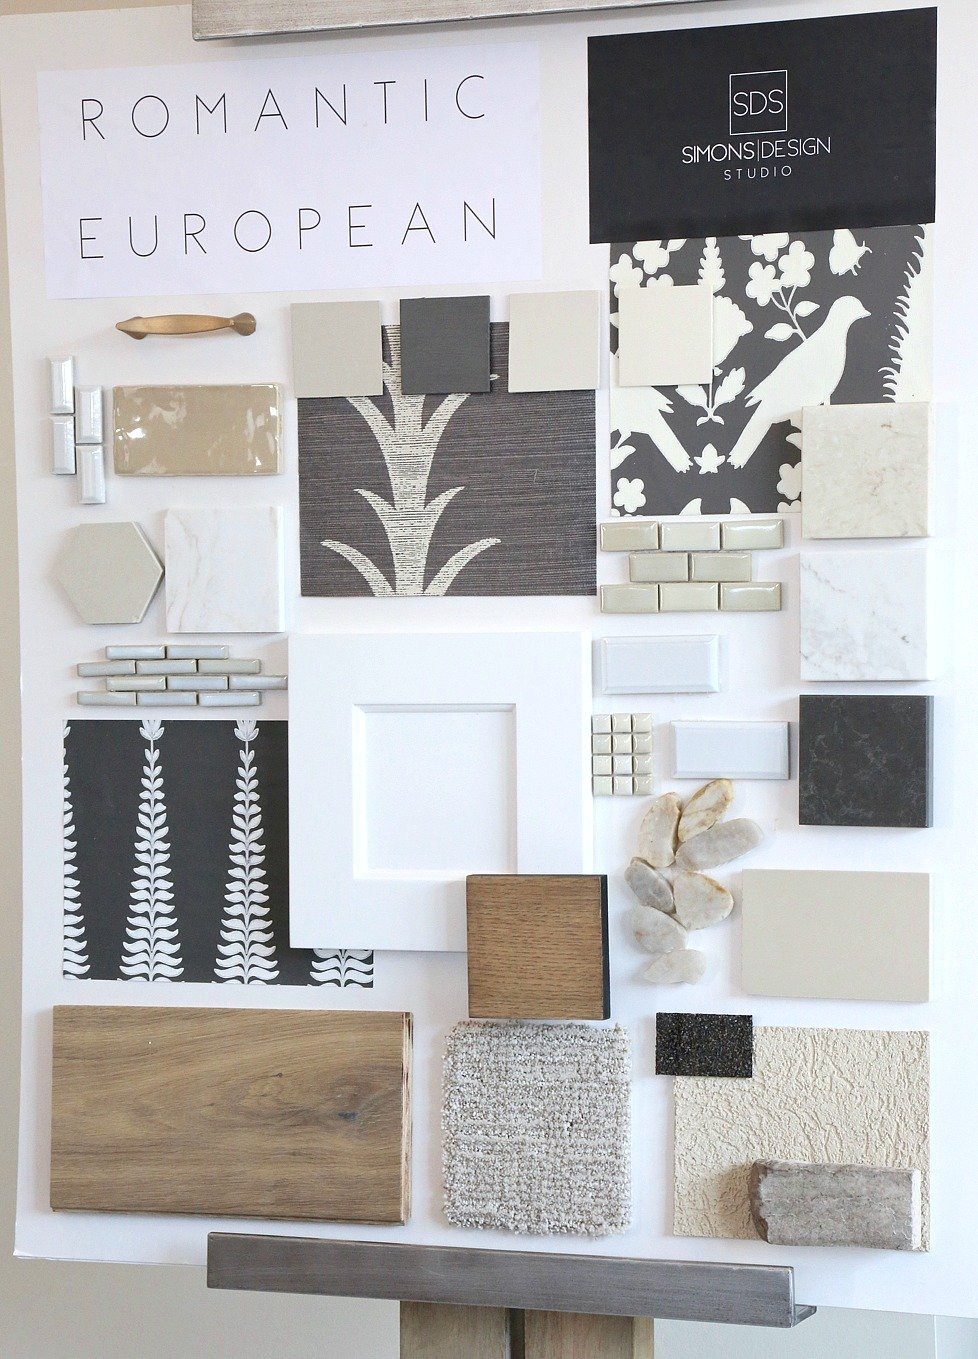 Design board from Simons Design Studio